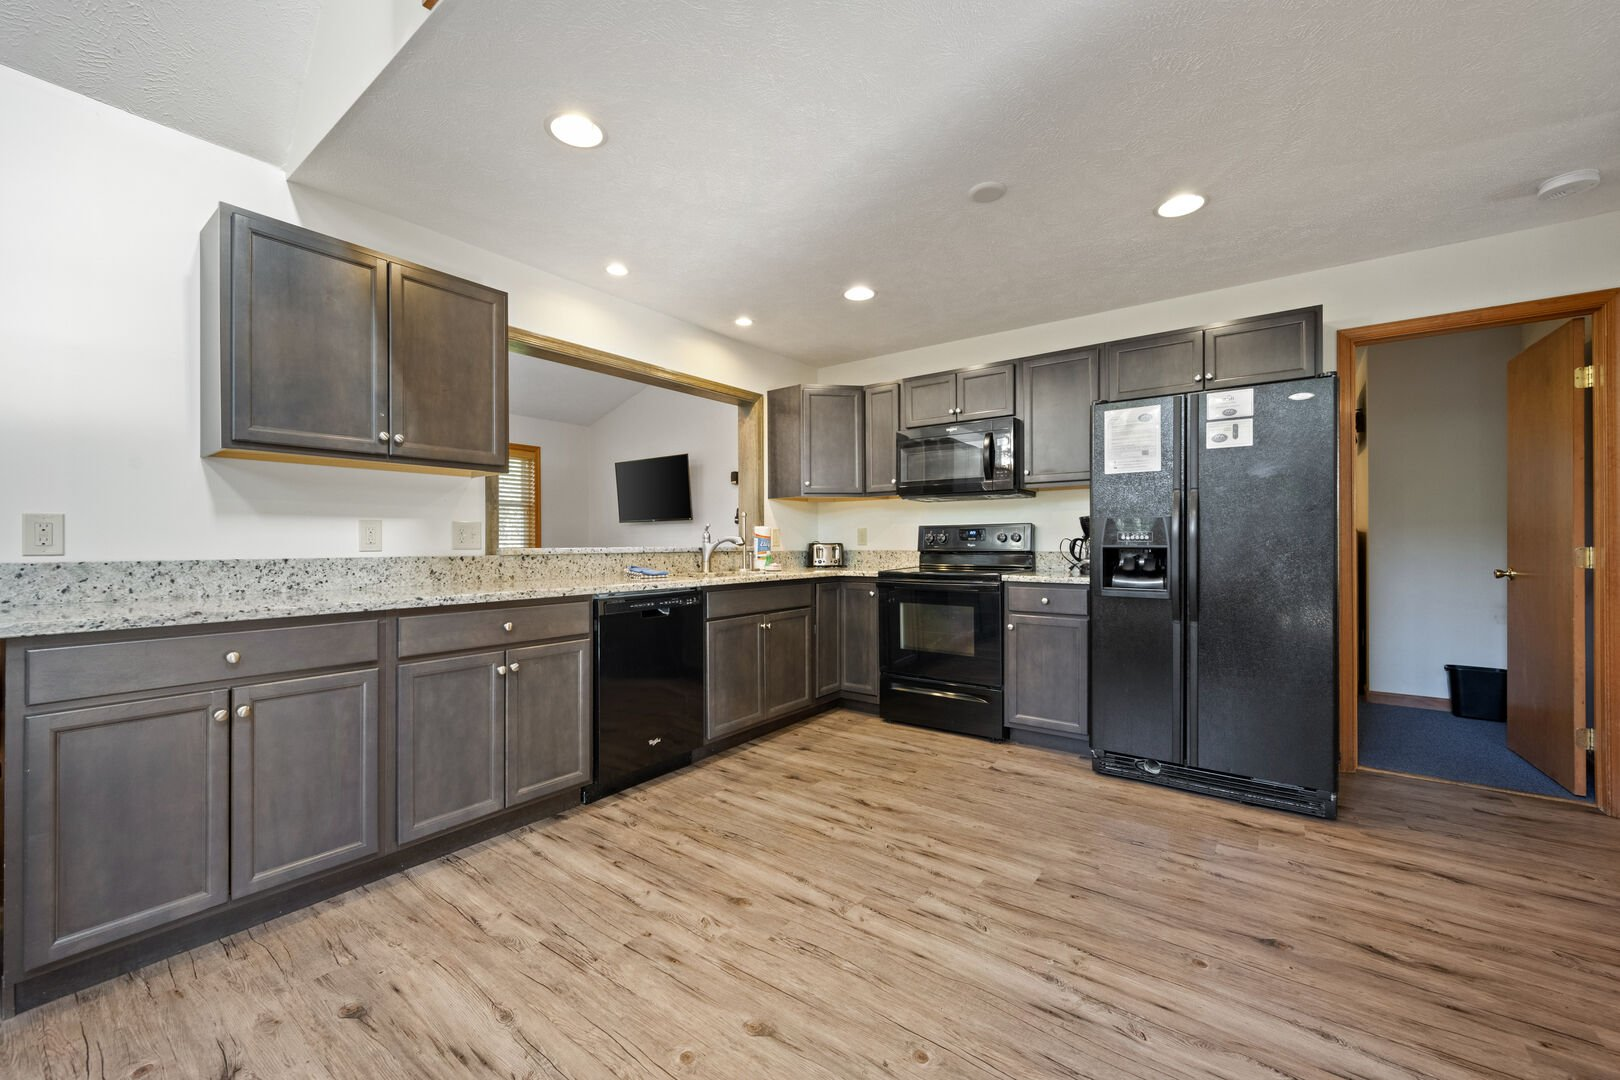 Kitchen area with refrigerator and oven